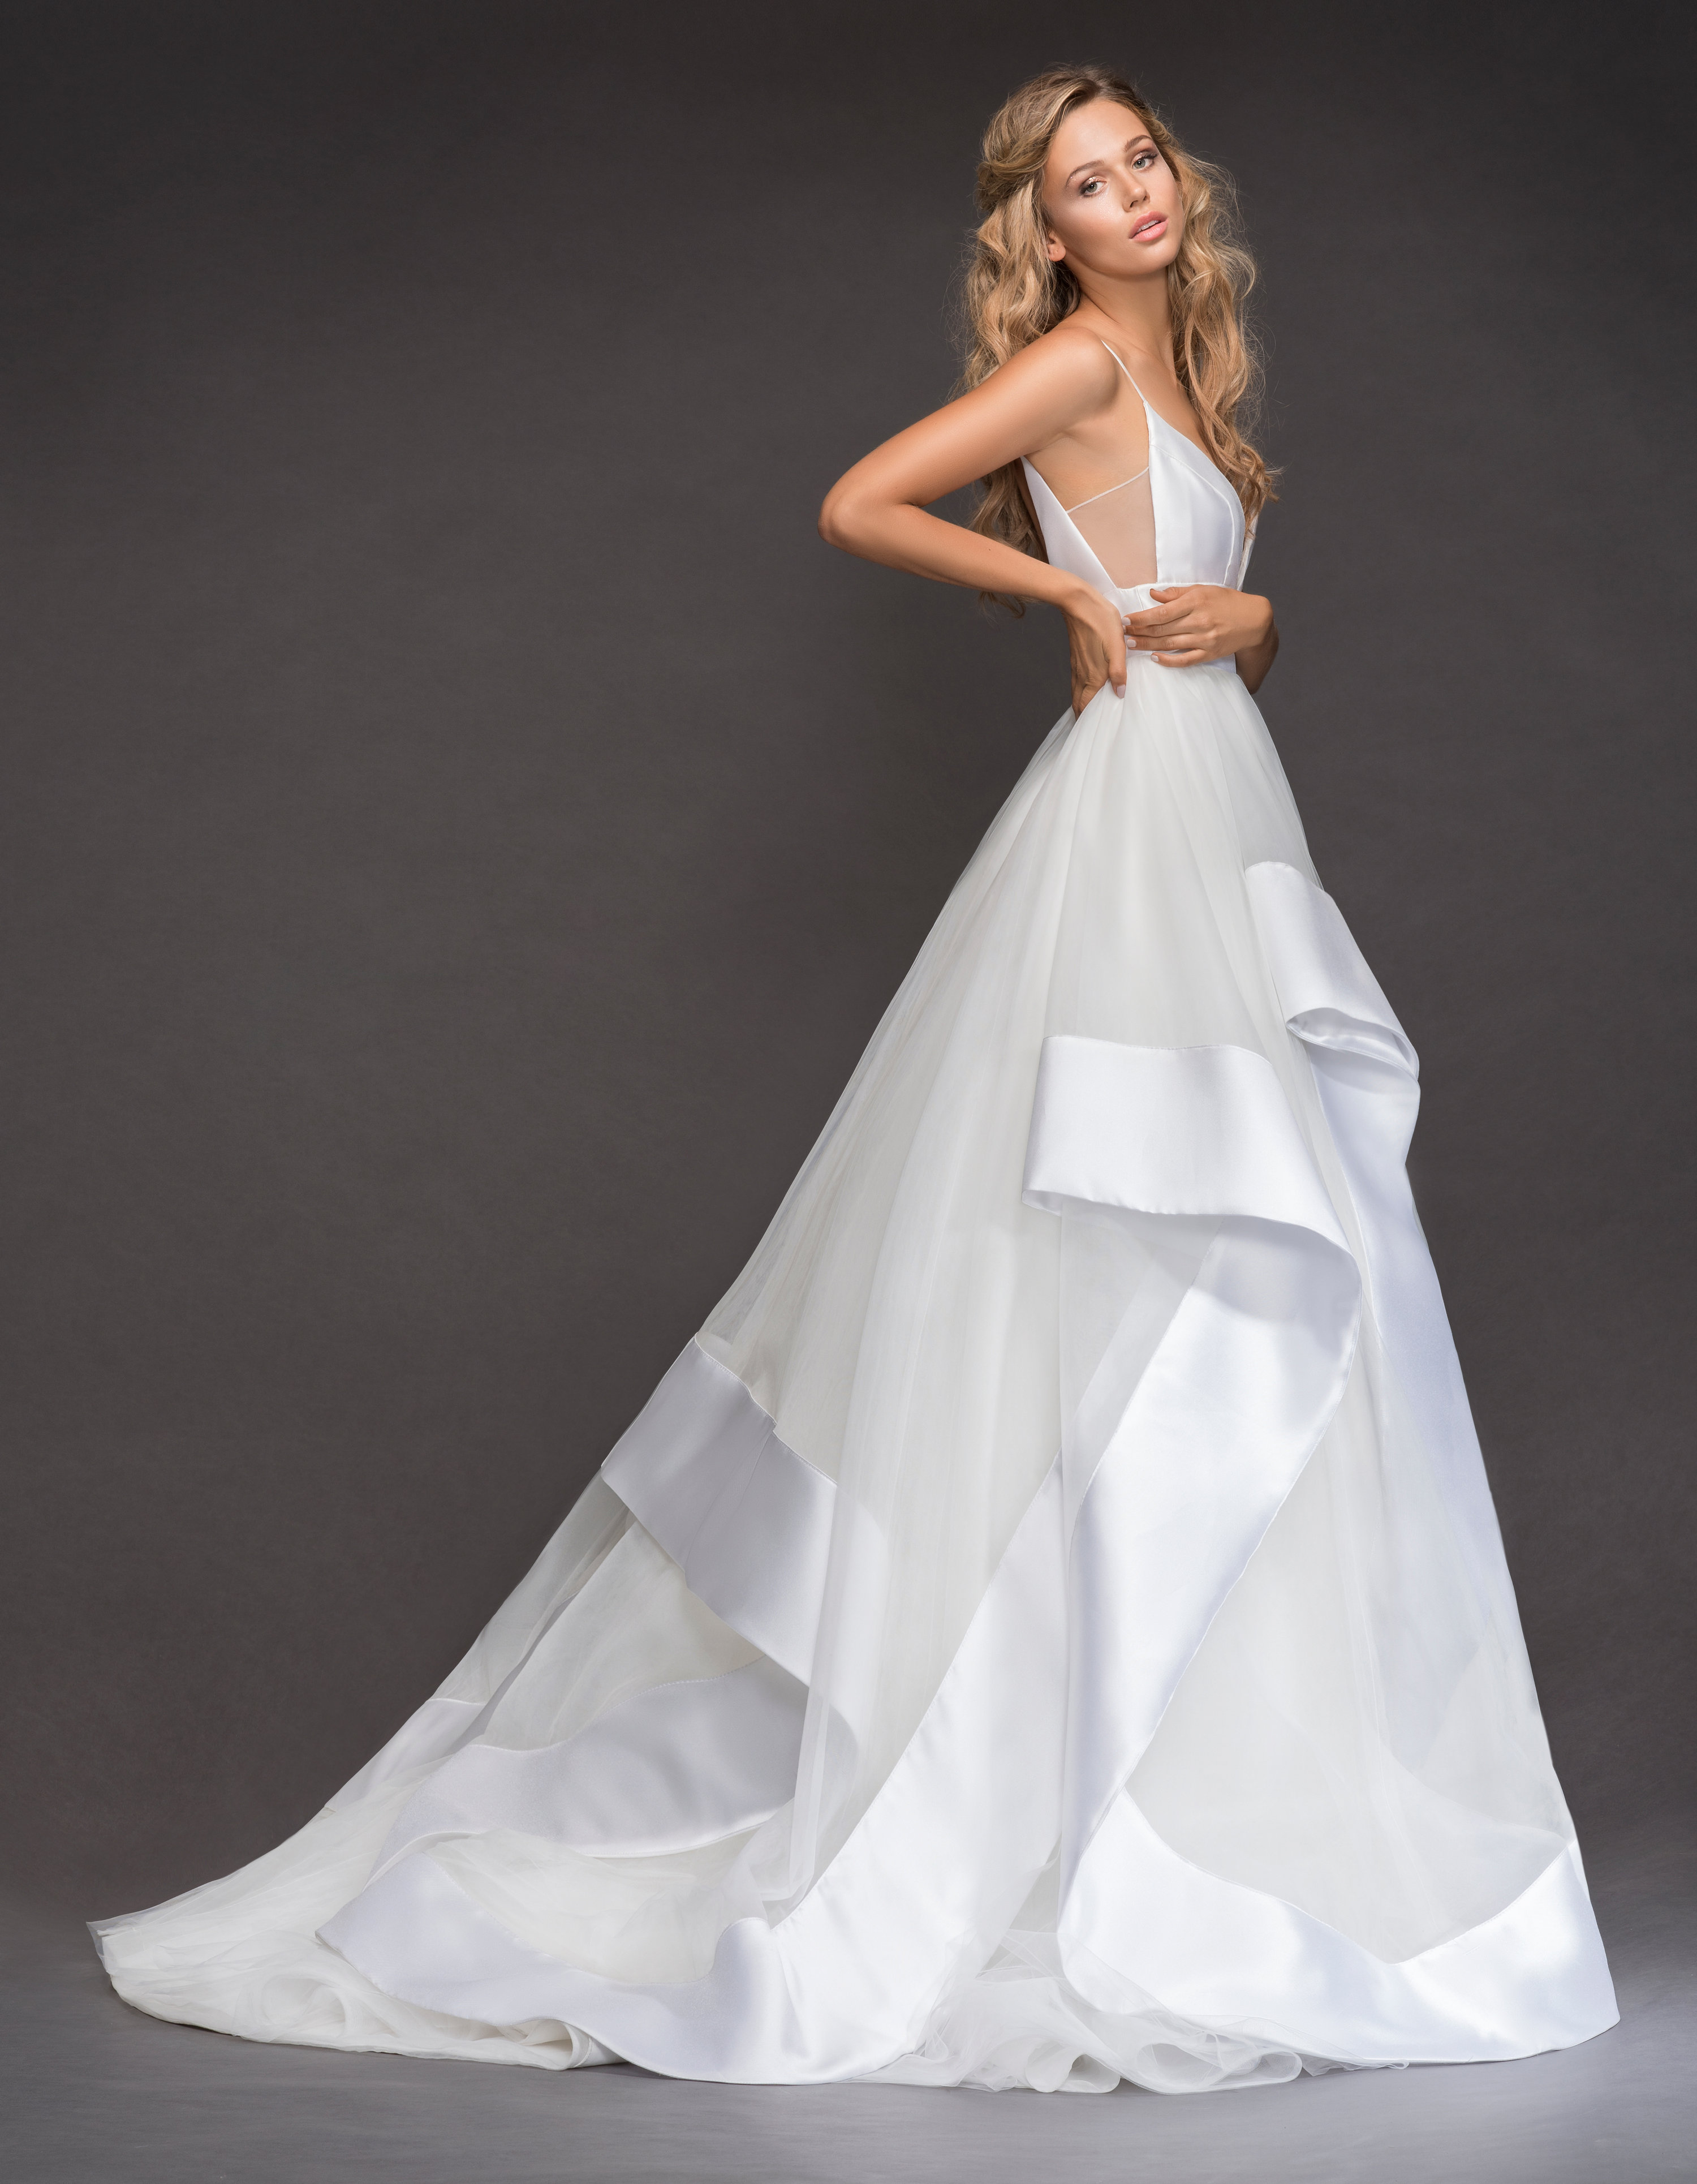 Bridal Gowns and Wedding Dresses by JLM Couture - Style 6800 Andi